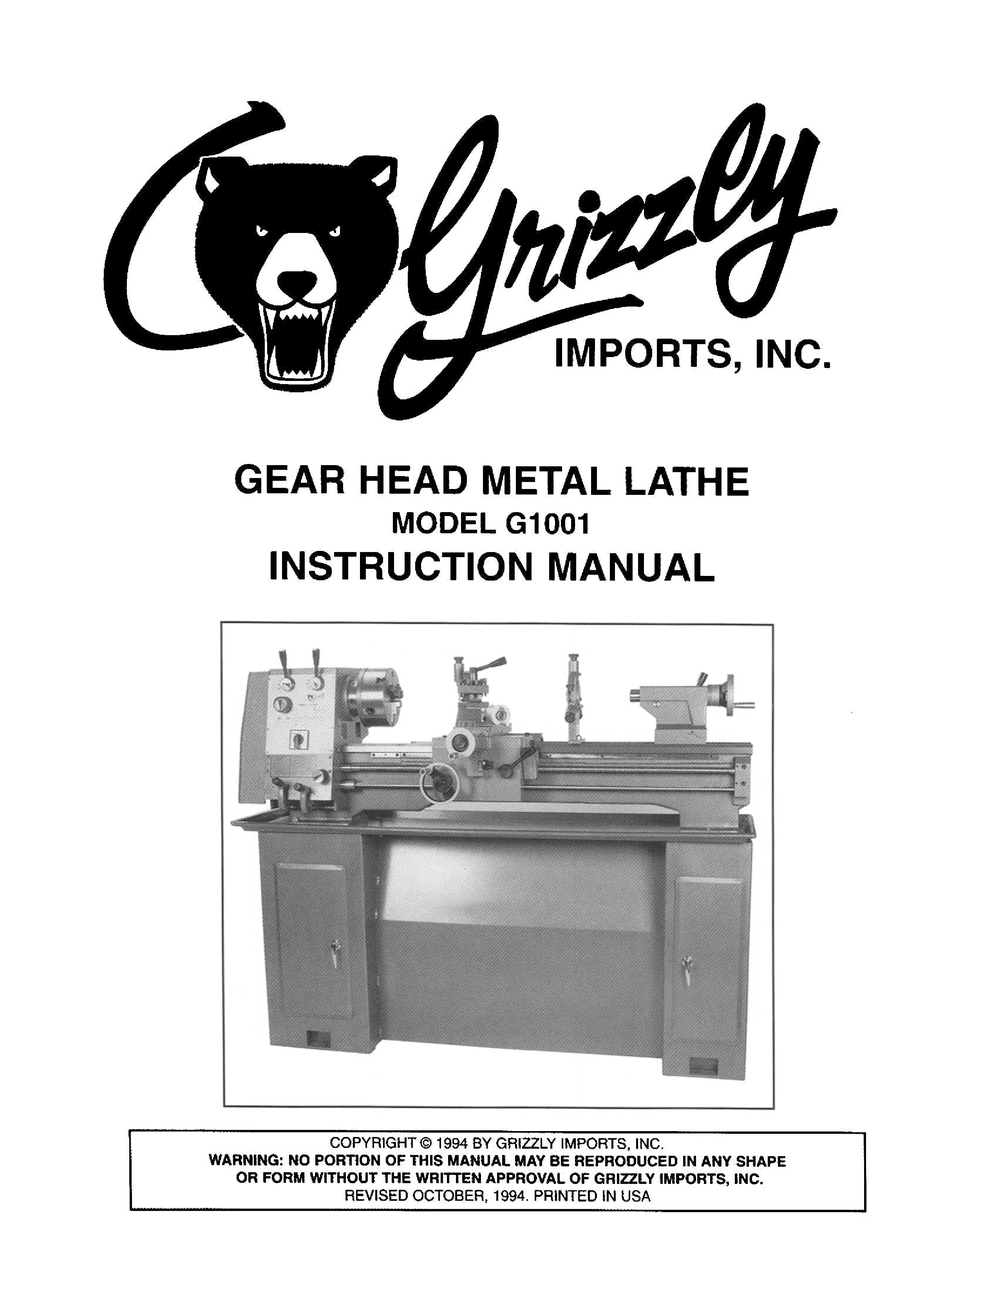 grizzly machine parts